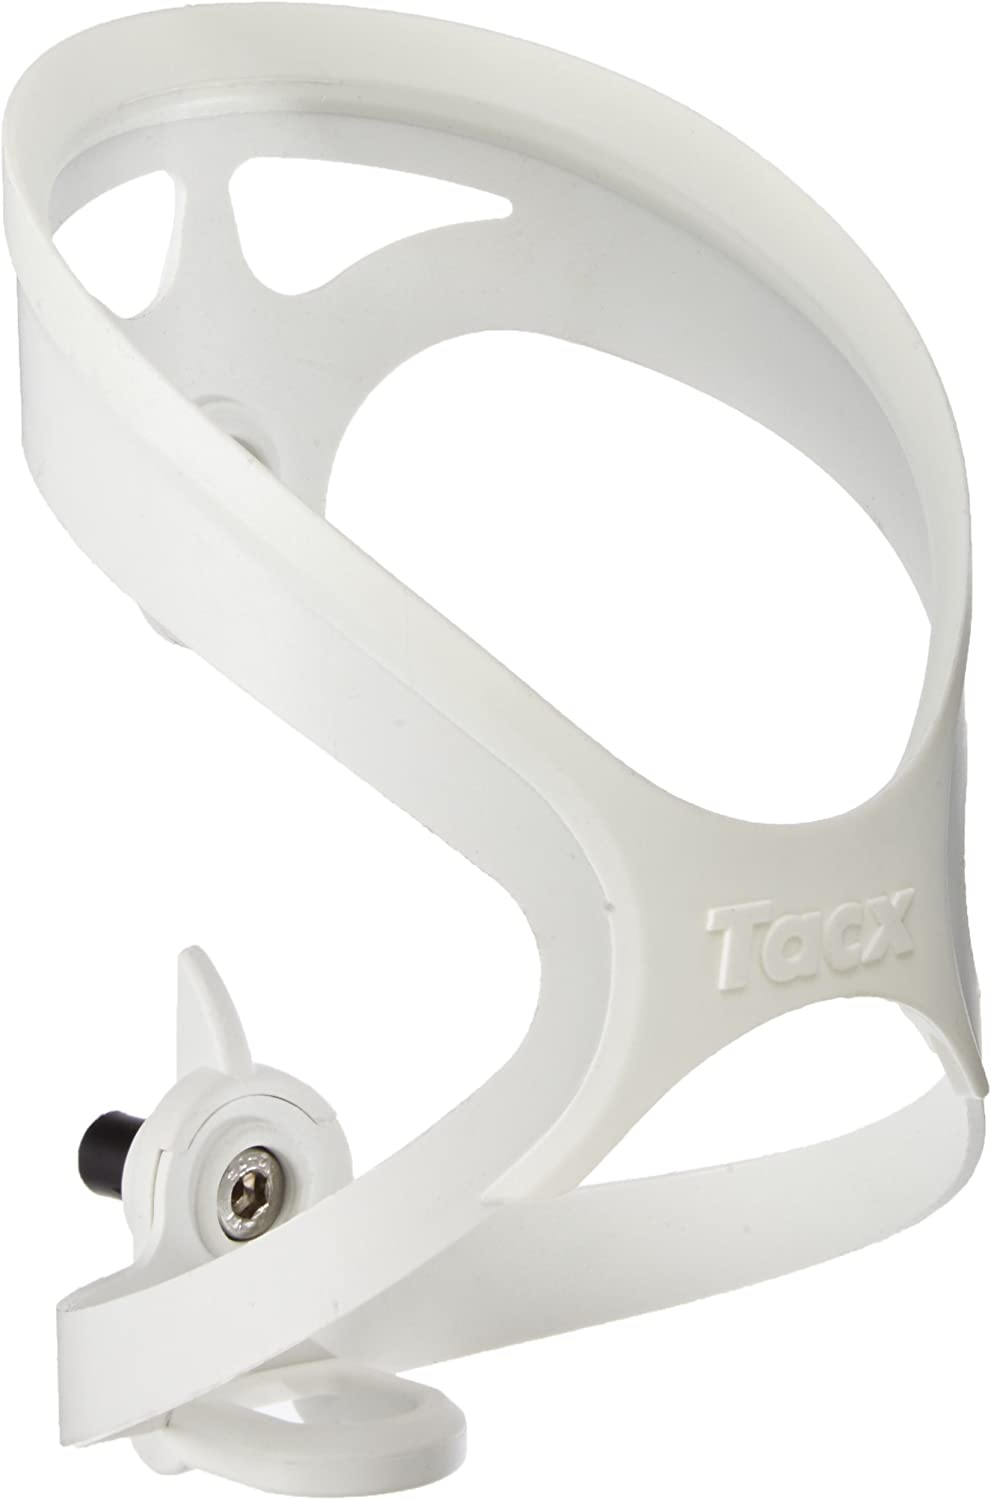 Tacx Tao Light Bike Water Bottle Cage White